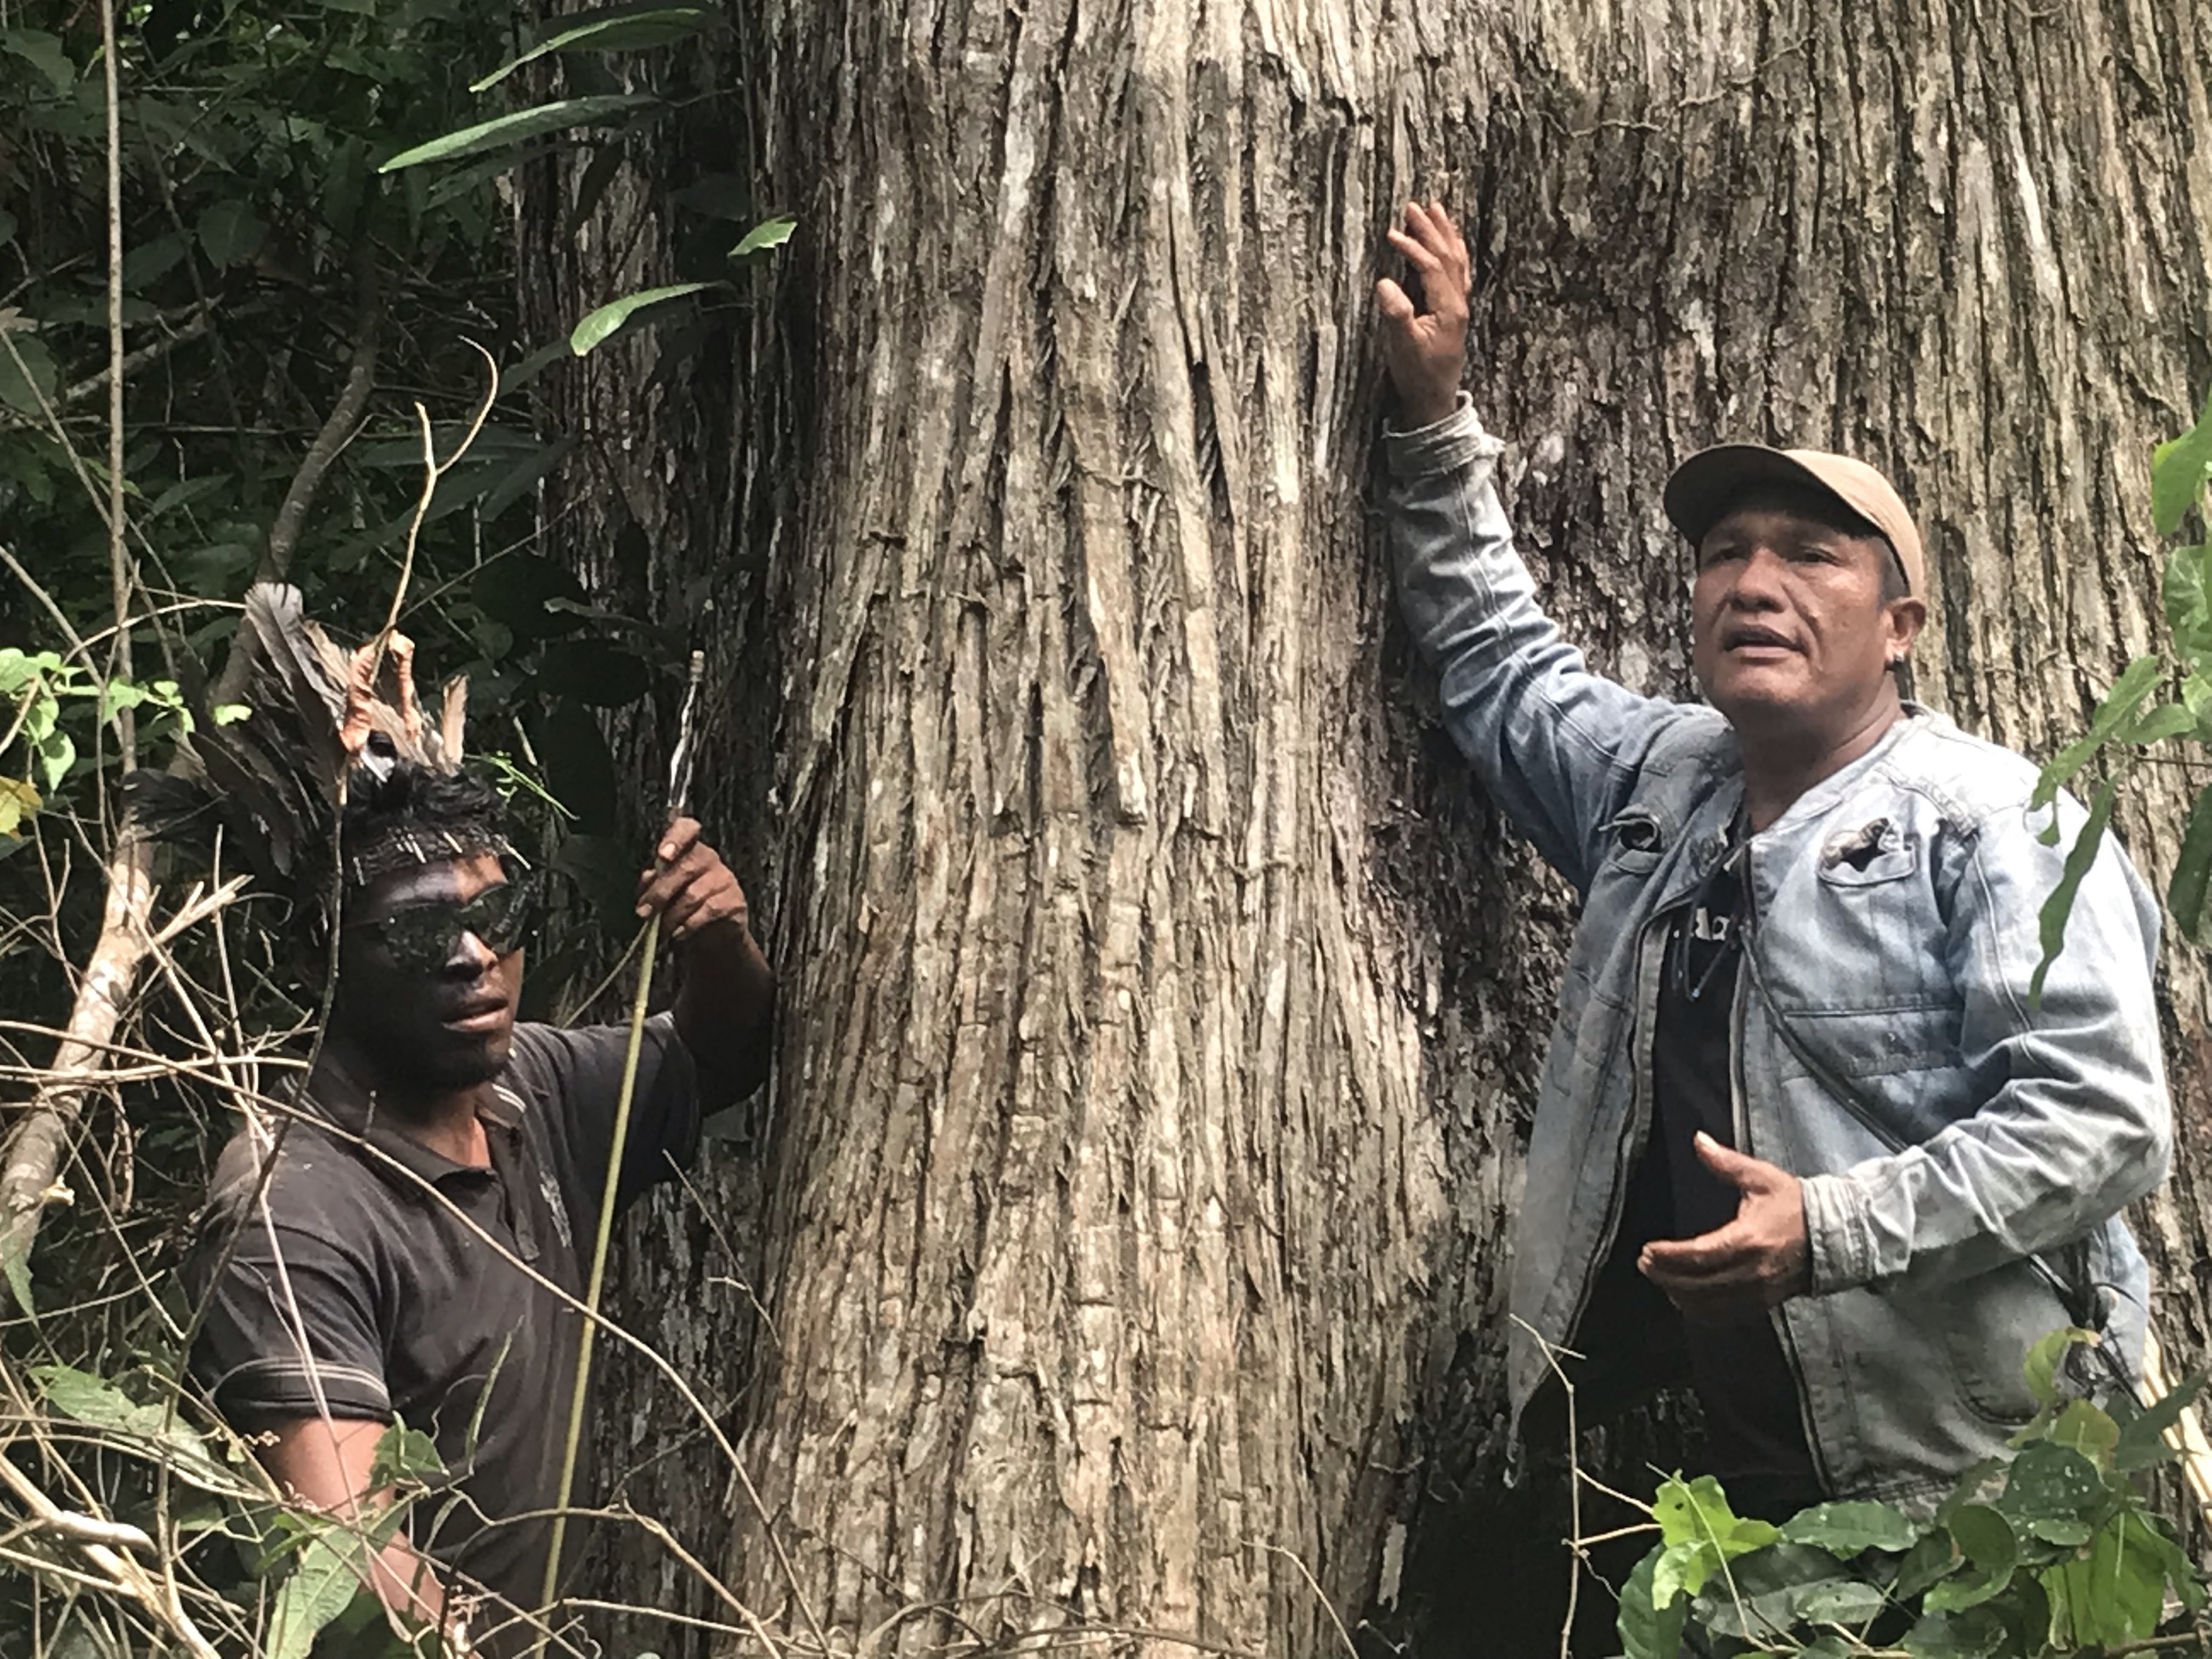 """Indigenous Guajajara leader Paulo Paulino Guajajara (left) and Olímpio Iwyramu Guajajara (right), the leader of the """"Guardians of the Forest,"""" show a tree targeted by loggers in the Araribóia indigenous reserve, in Maranhão state, on Jan 31, 2019. Image by Karla Mendes/Mongabay"""